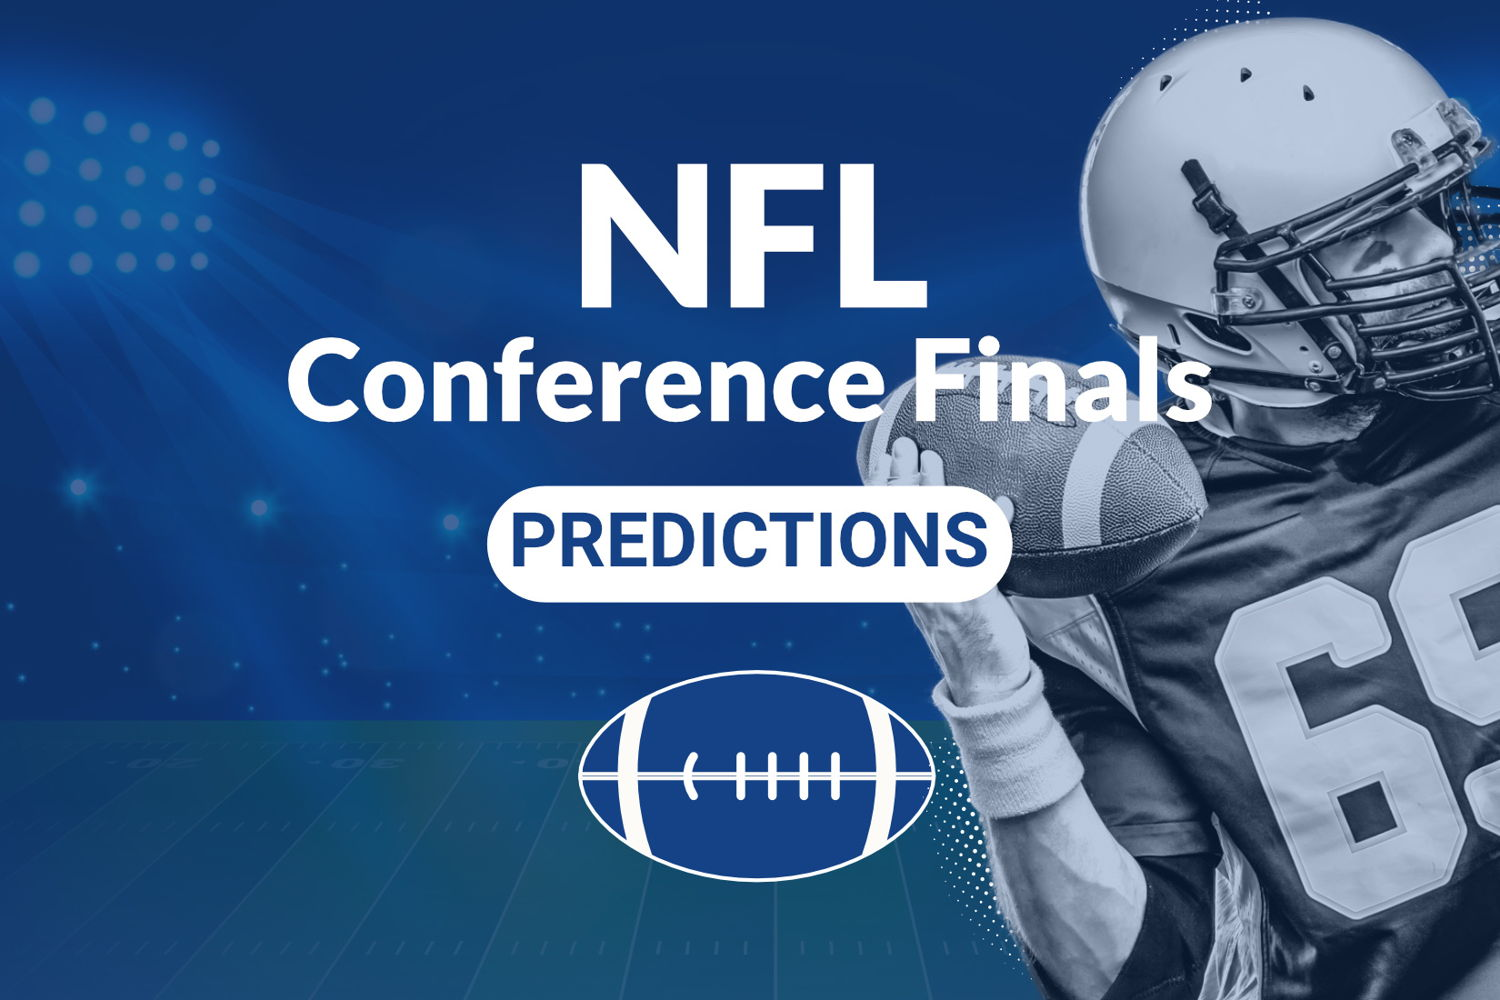 NFL Conference Finals: Chiefs, Packers Favored To Advance To Super Bowl